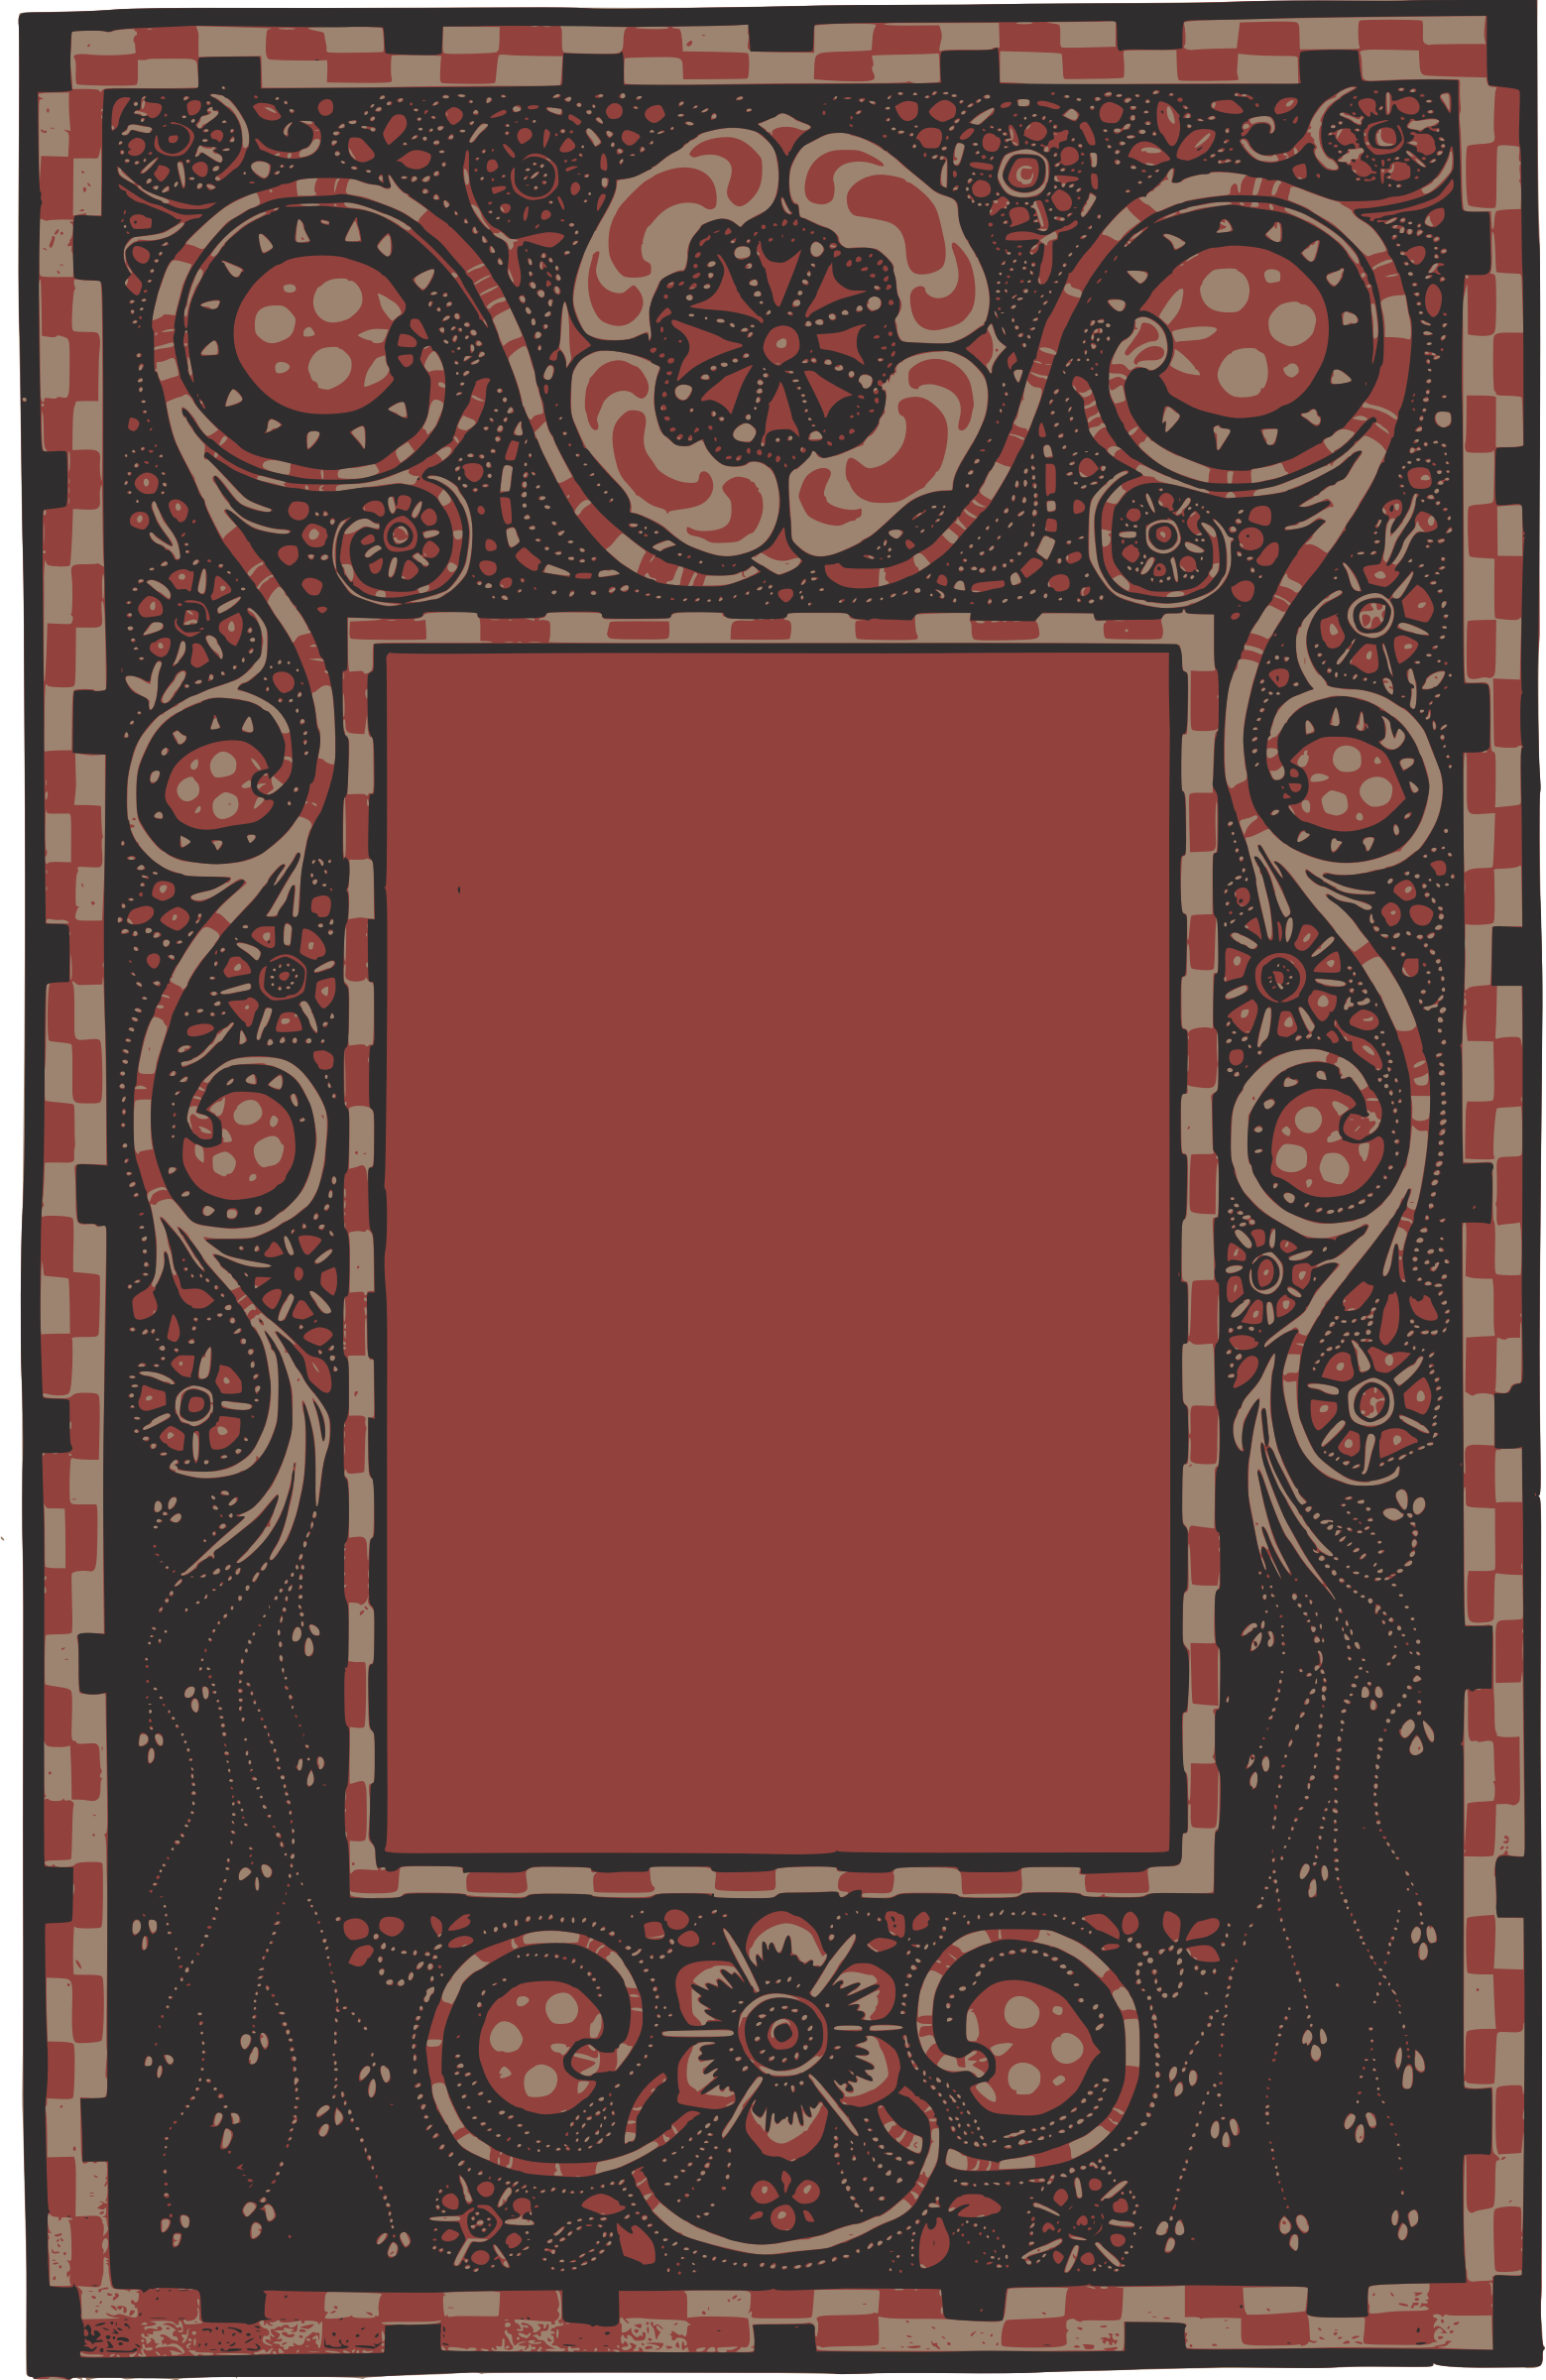 Red Decorative Frame by j4p4n